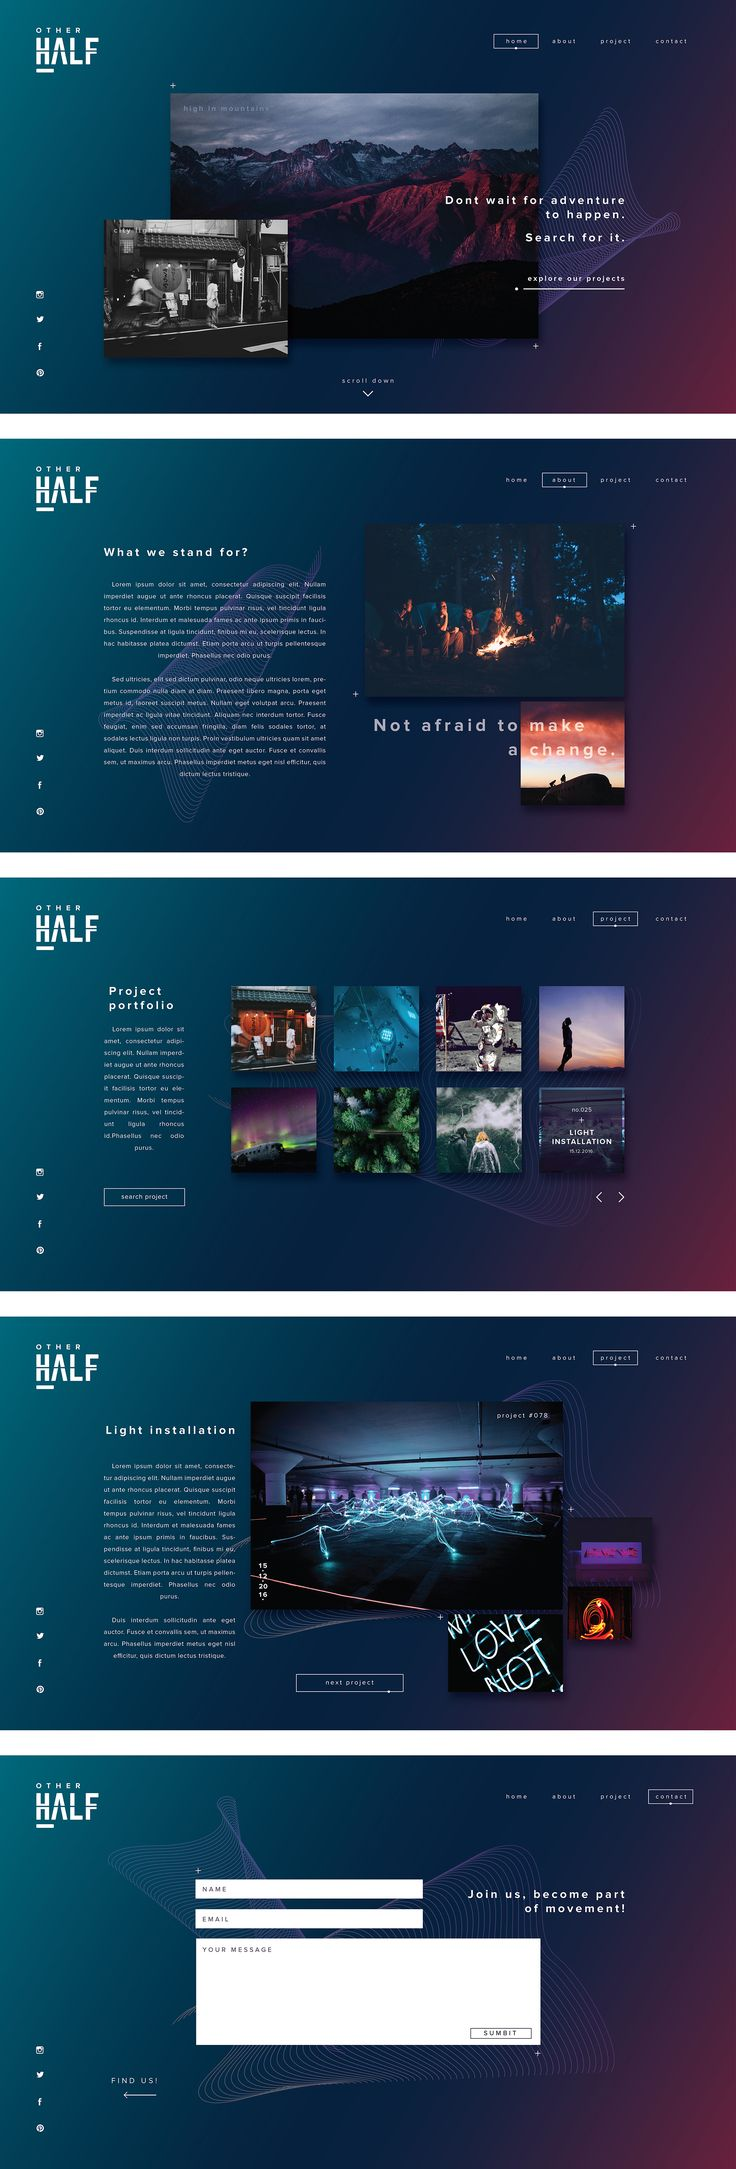 Other half - web design #web #design #gradient #modern #layout